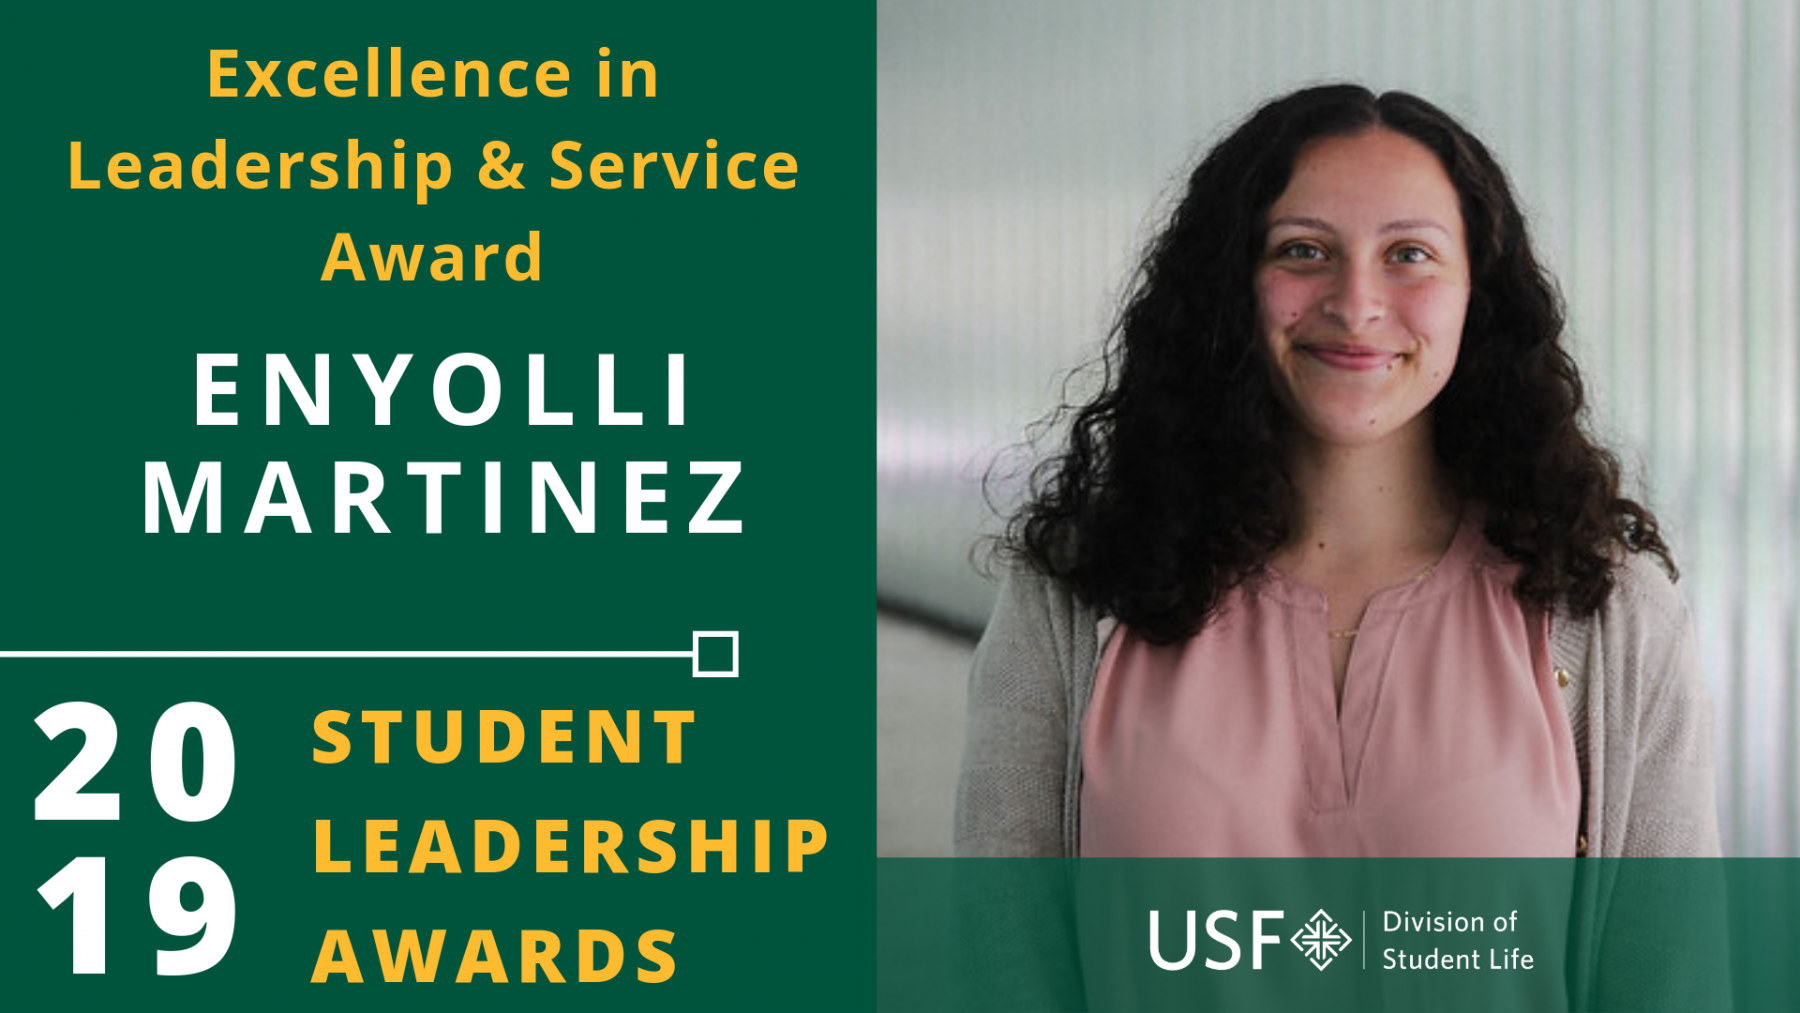 Enyolli Martinez Excellence in Leadership Award Recipient